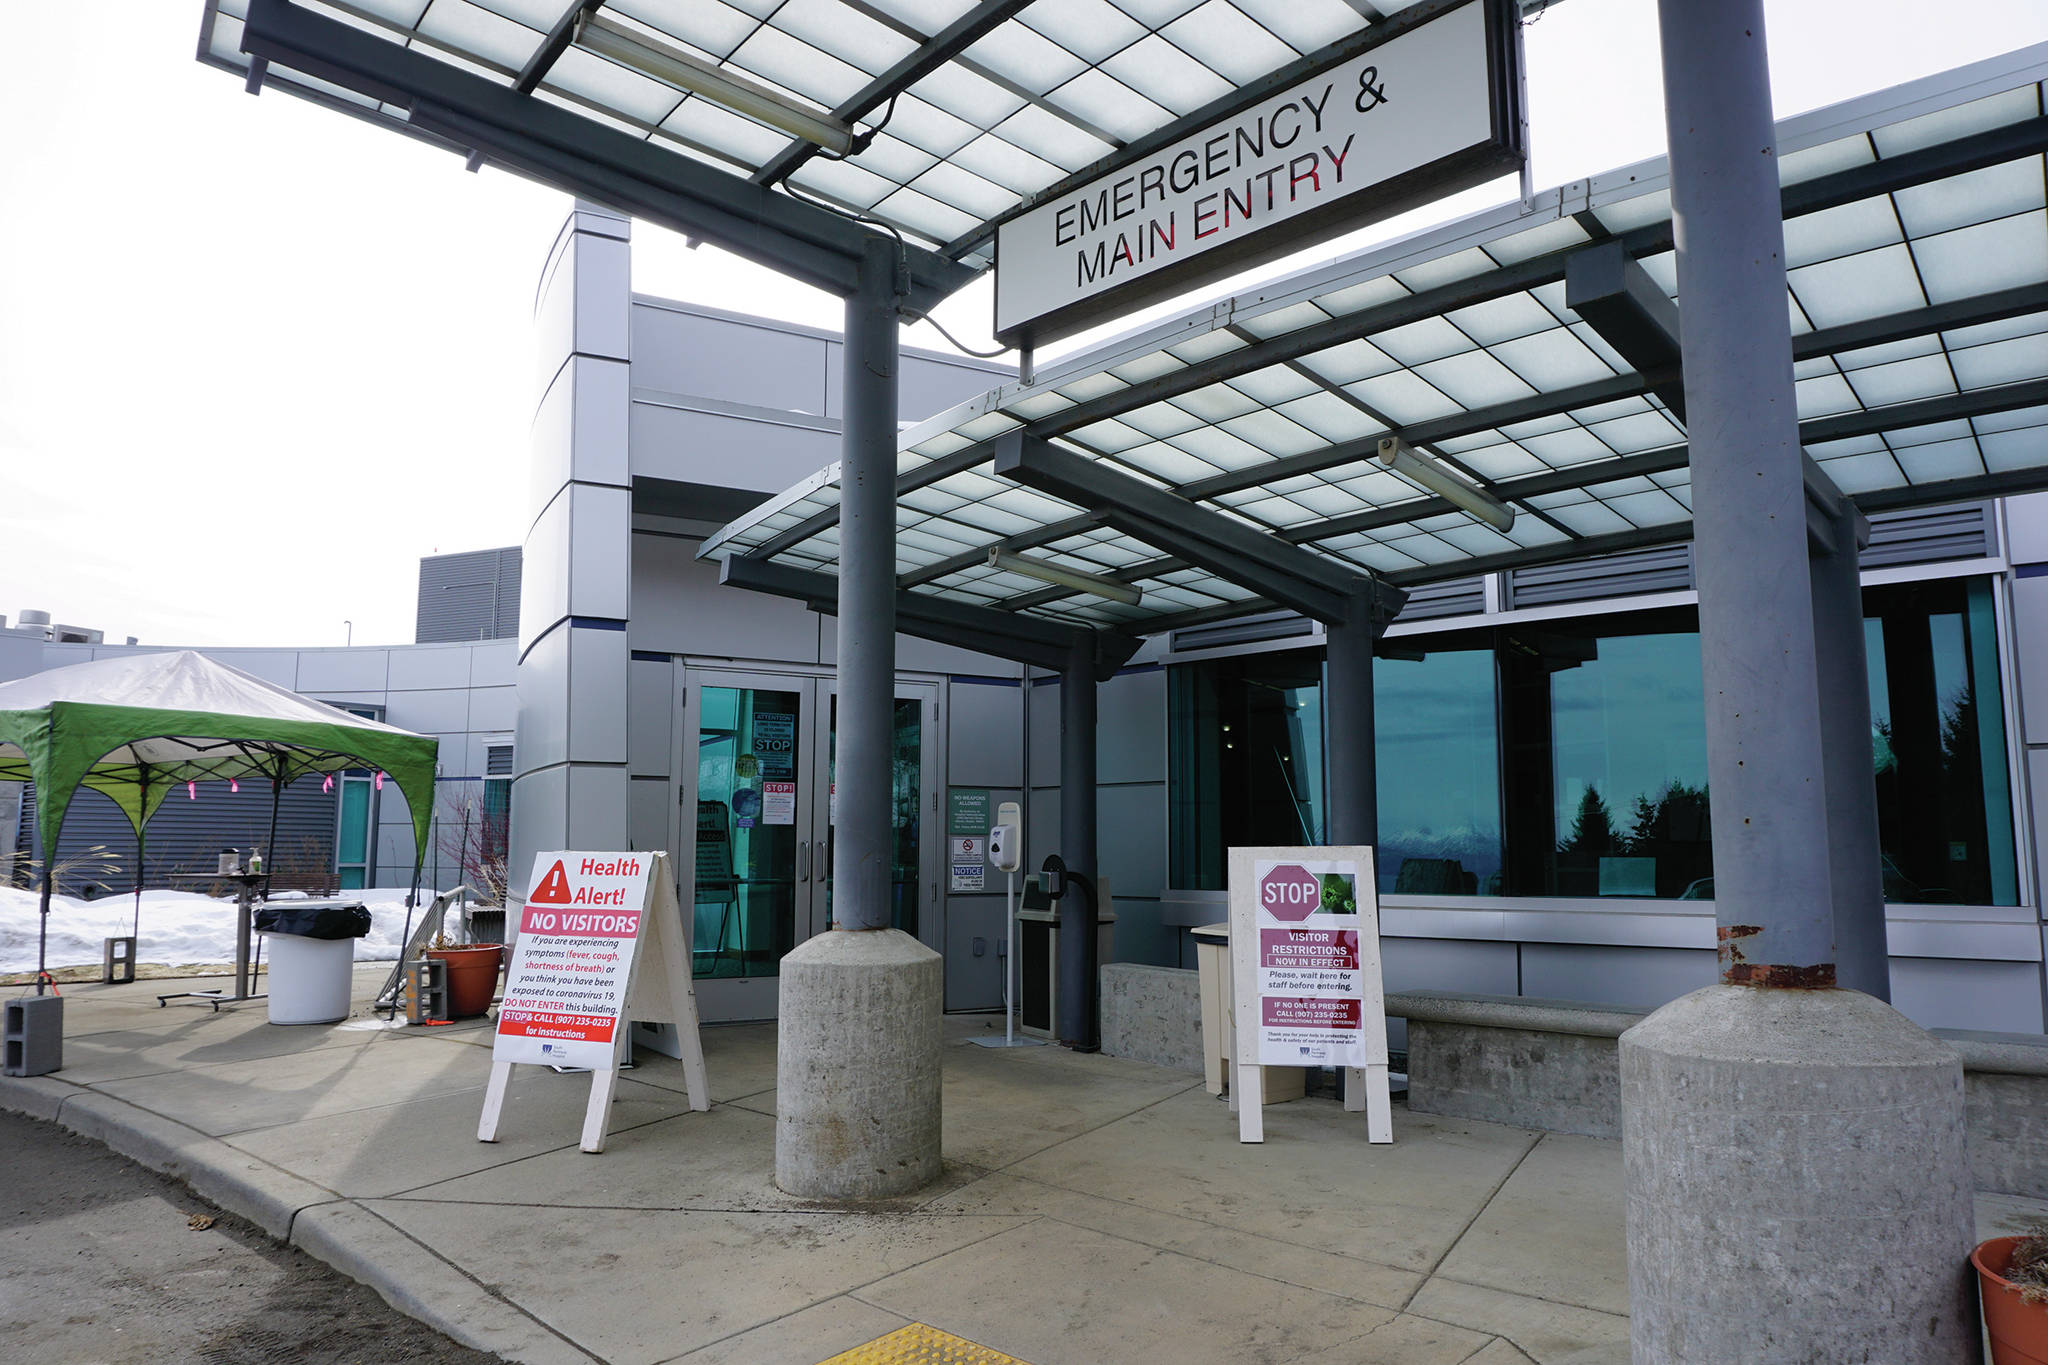 Signs on Saturday, March 28, 2020, at the main entrance to South Peninsula Hospital in Homer, Alaska, warn visitors not to enter until they have been met by hospital staff. (Photo by Michael Armstrong/Homer News)